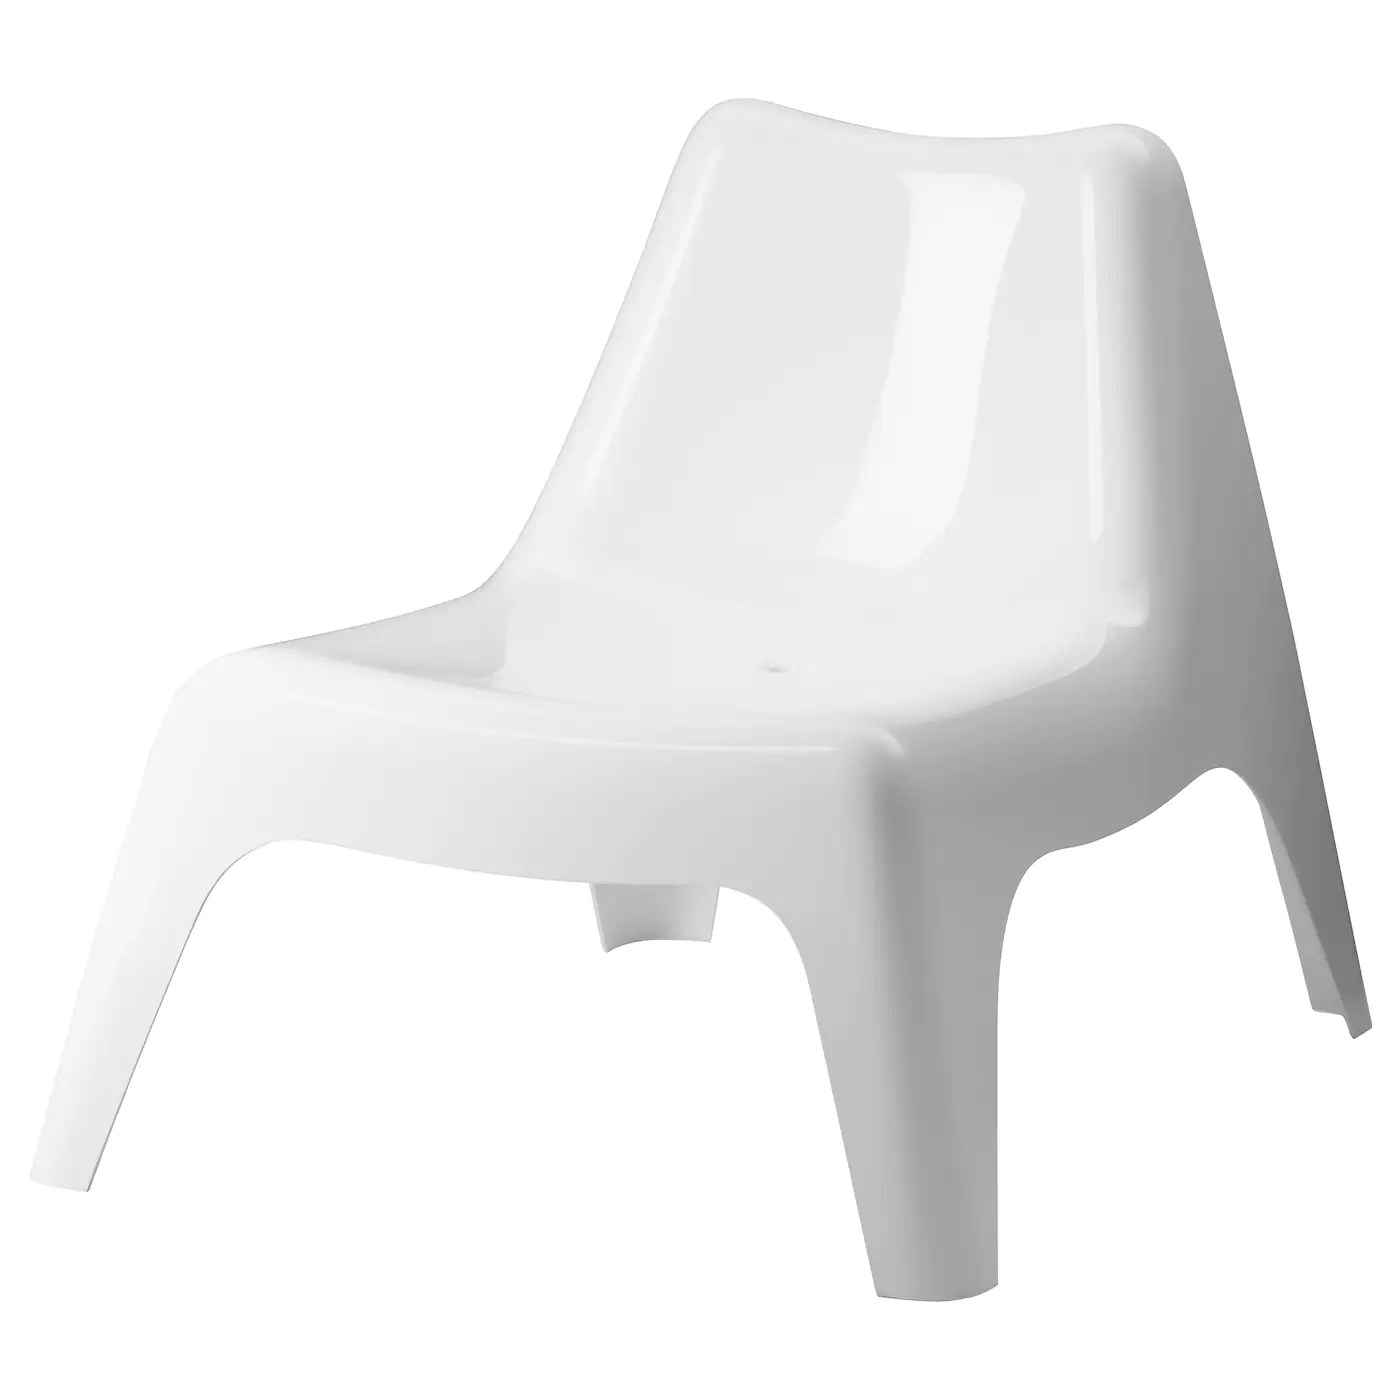 white plastic lounge chairs cheap card table and set ikea ps vÅgÖ easy chair outdoor